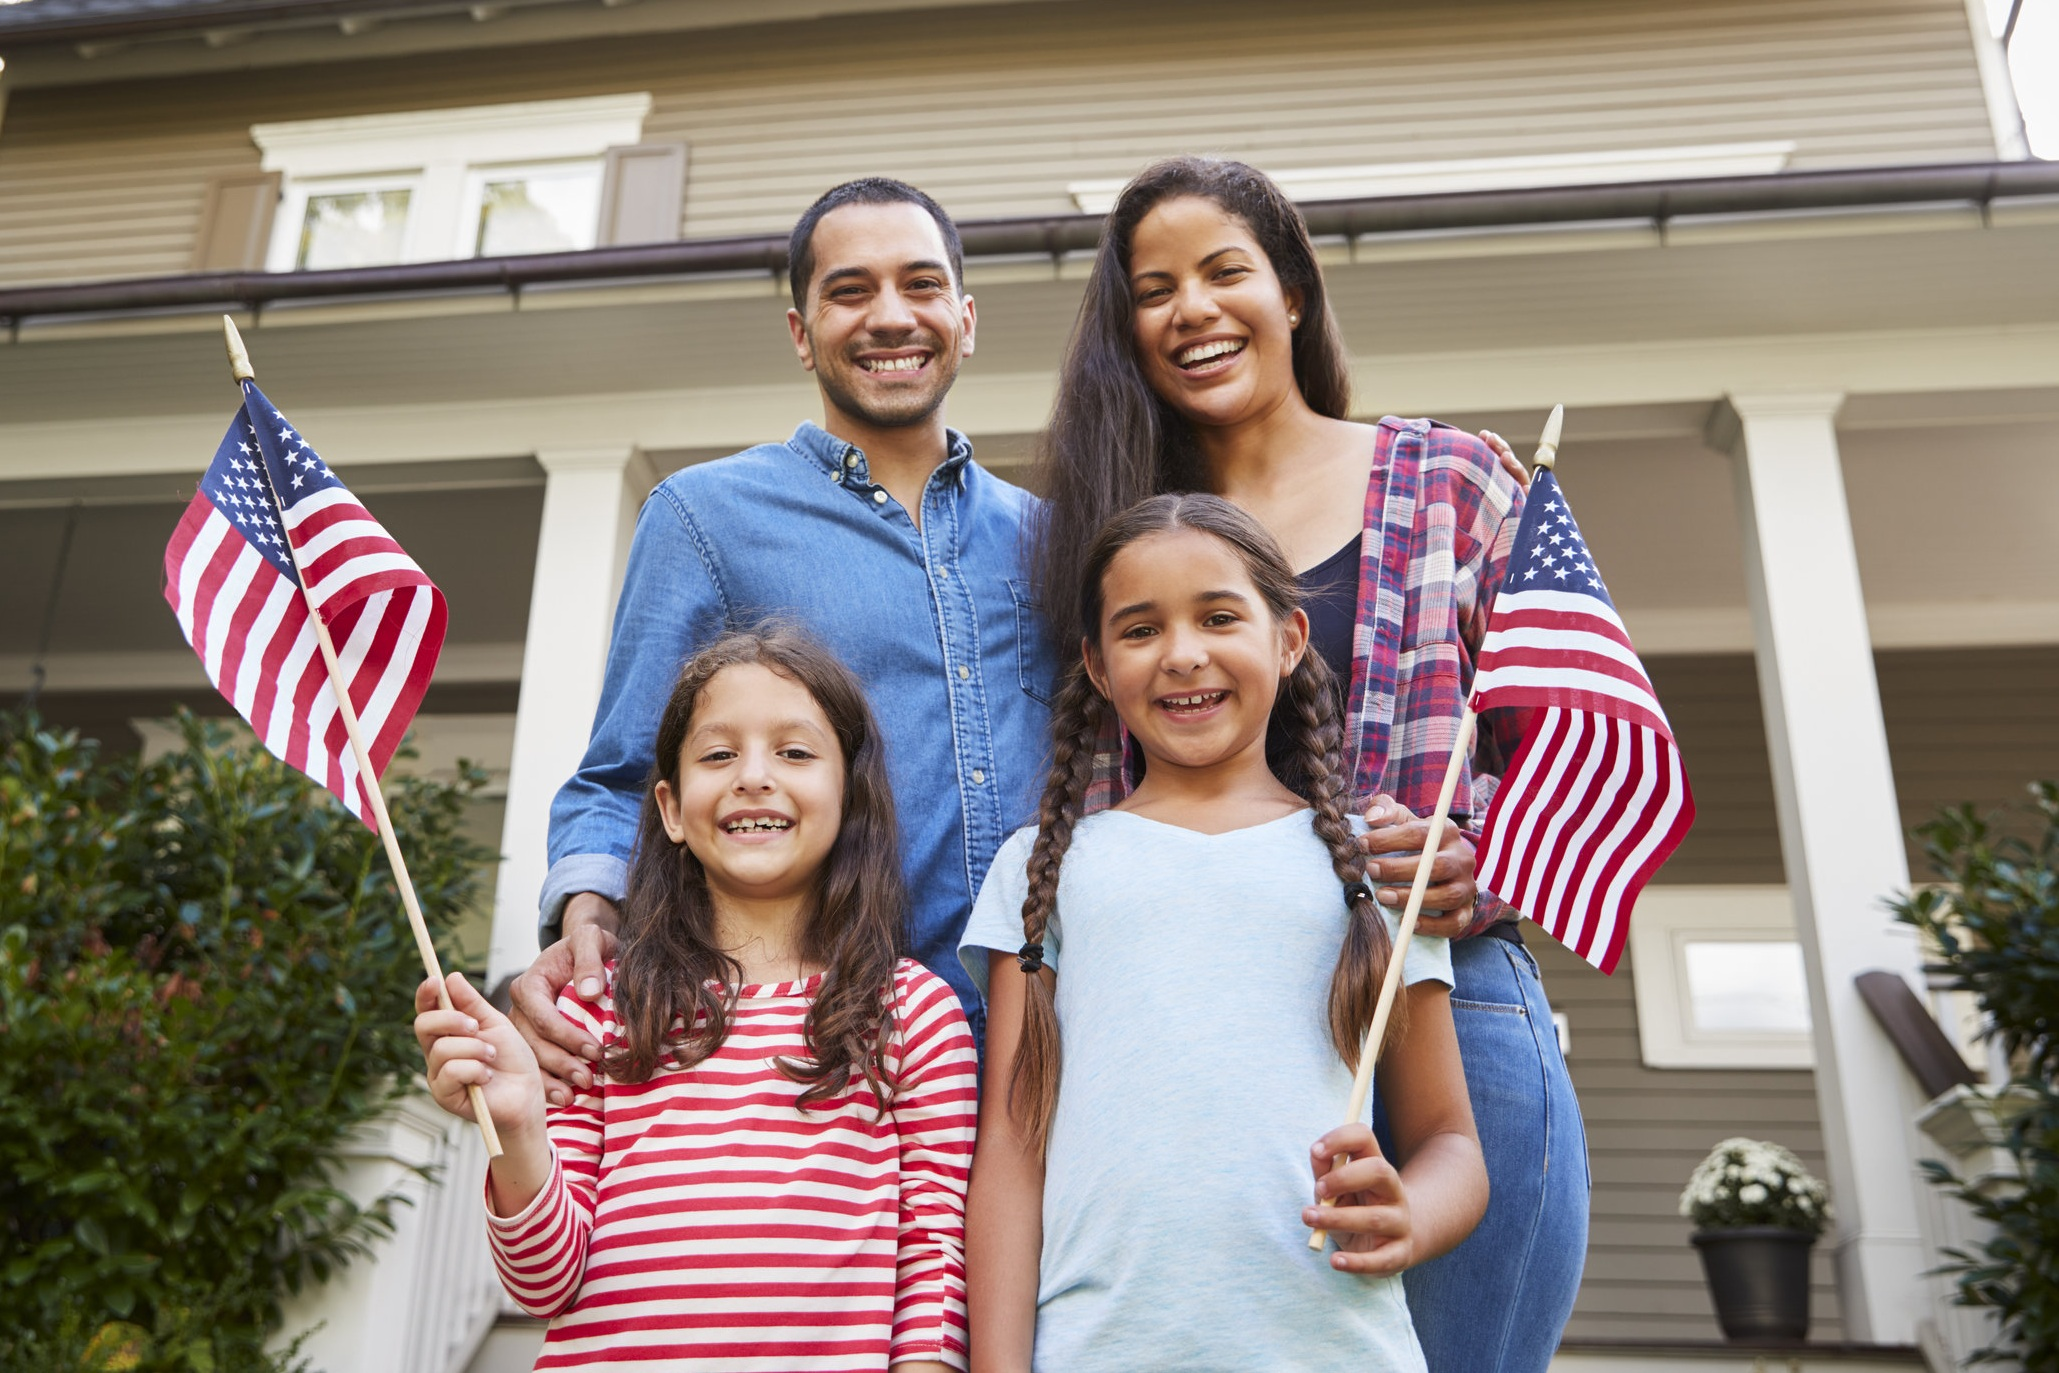 Realize Your American Dream Today - The law firm was founded on the principle that the hardworking immigrant population of this country deserves sound legal counsel and aggressive advocacy in the face of an unforgiving system, and that families deserve to stay together.